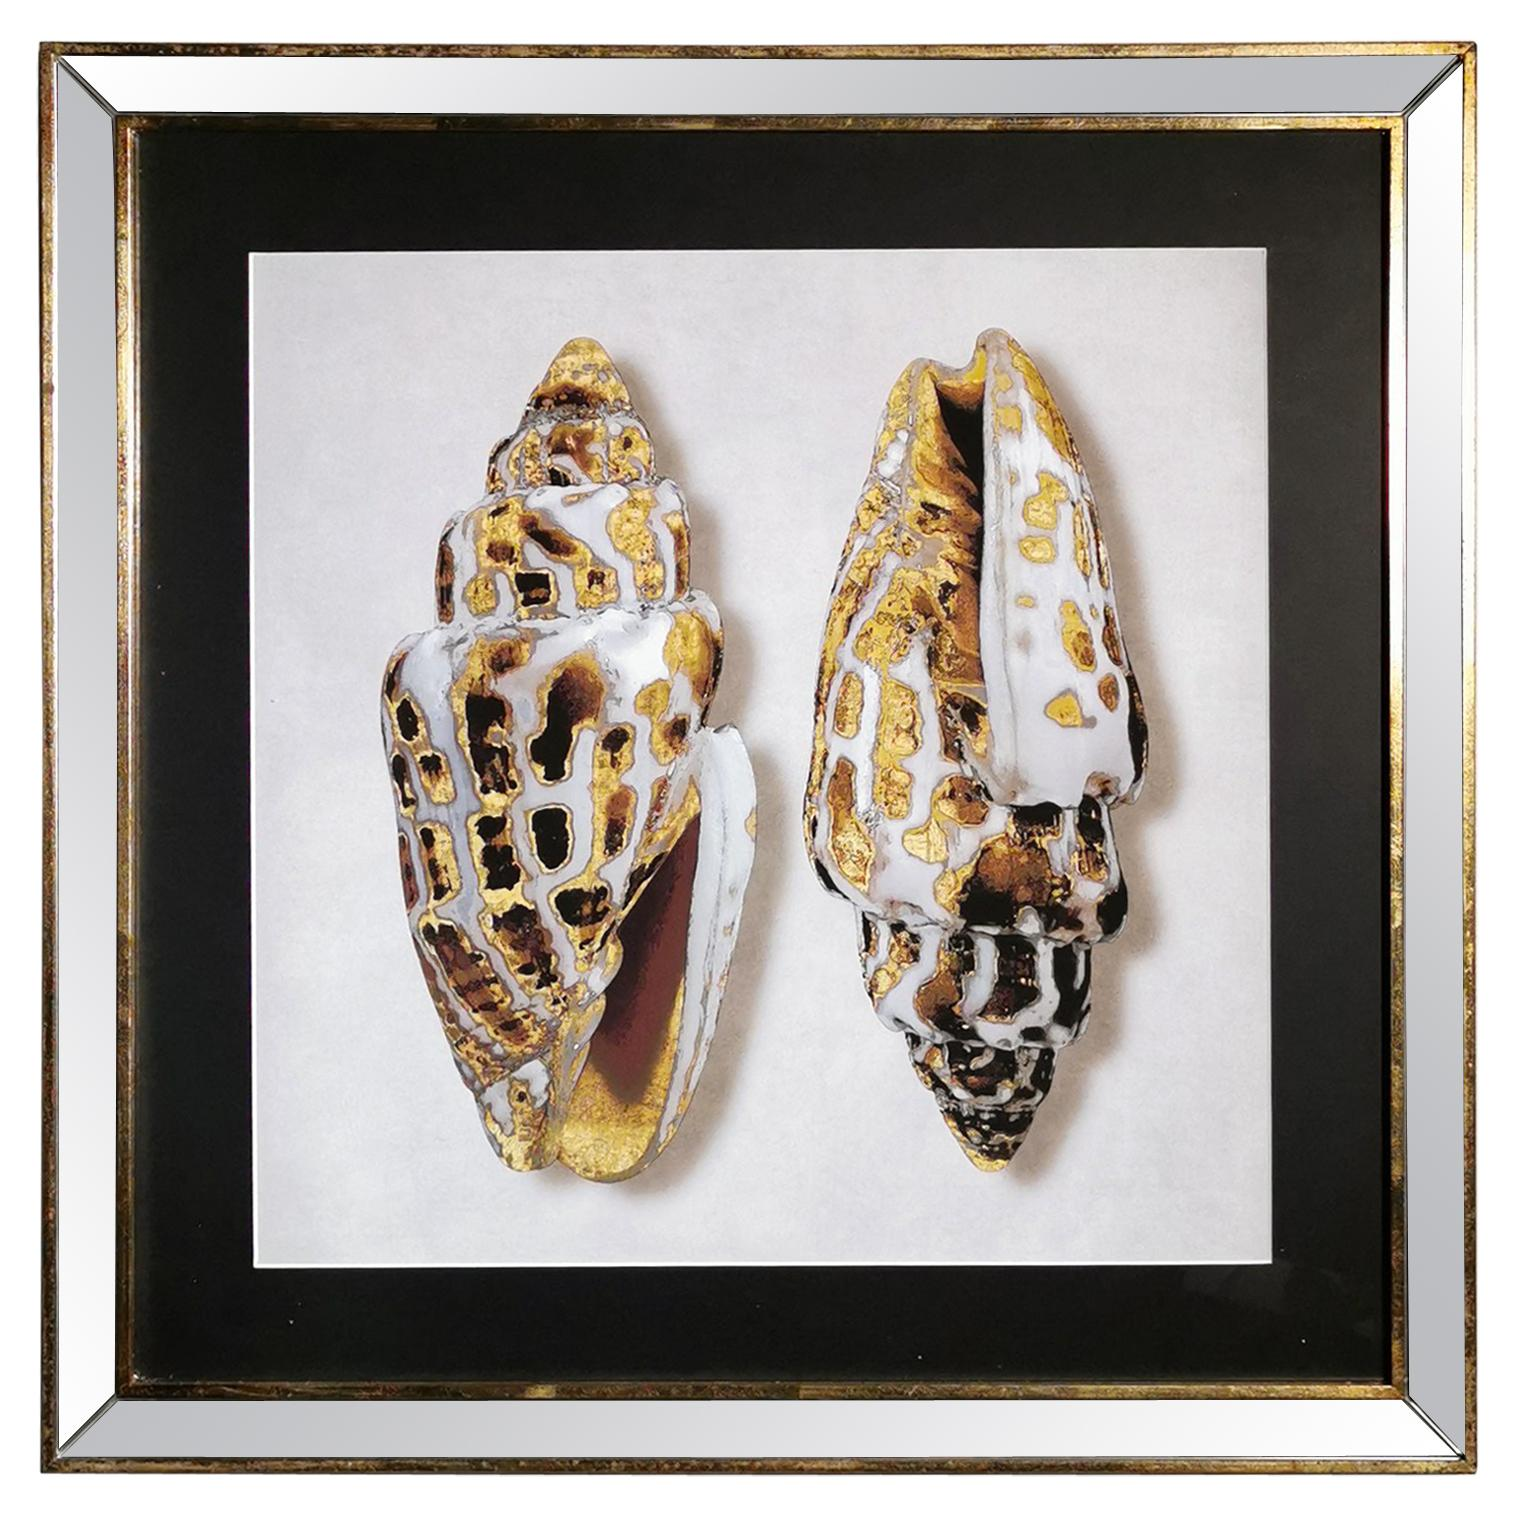 Contemporary Italian Golden Shells Print, Gilded Wood Frame with Mirror '4 of 4'